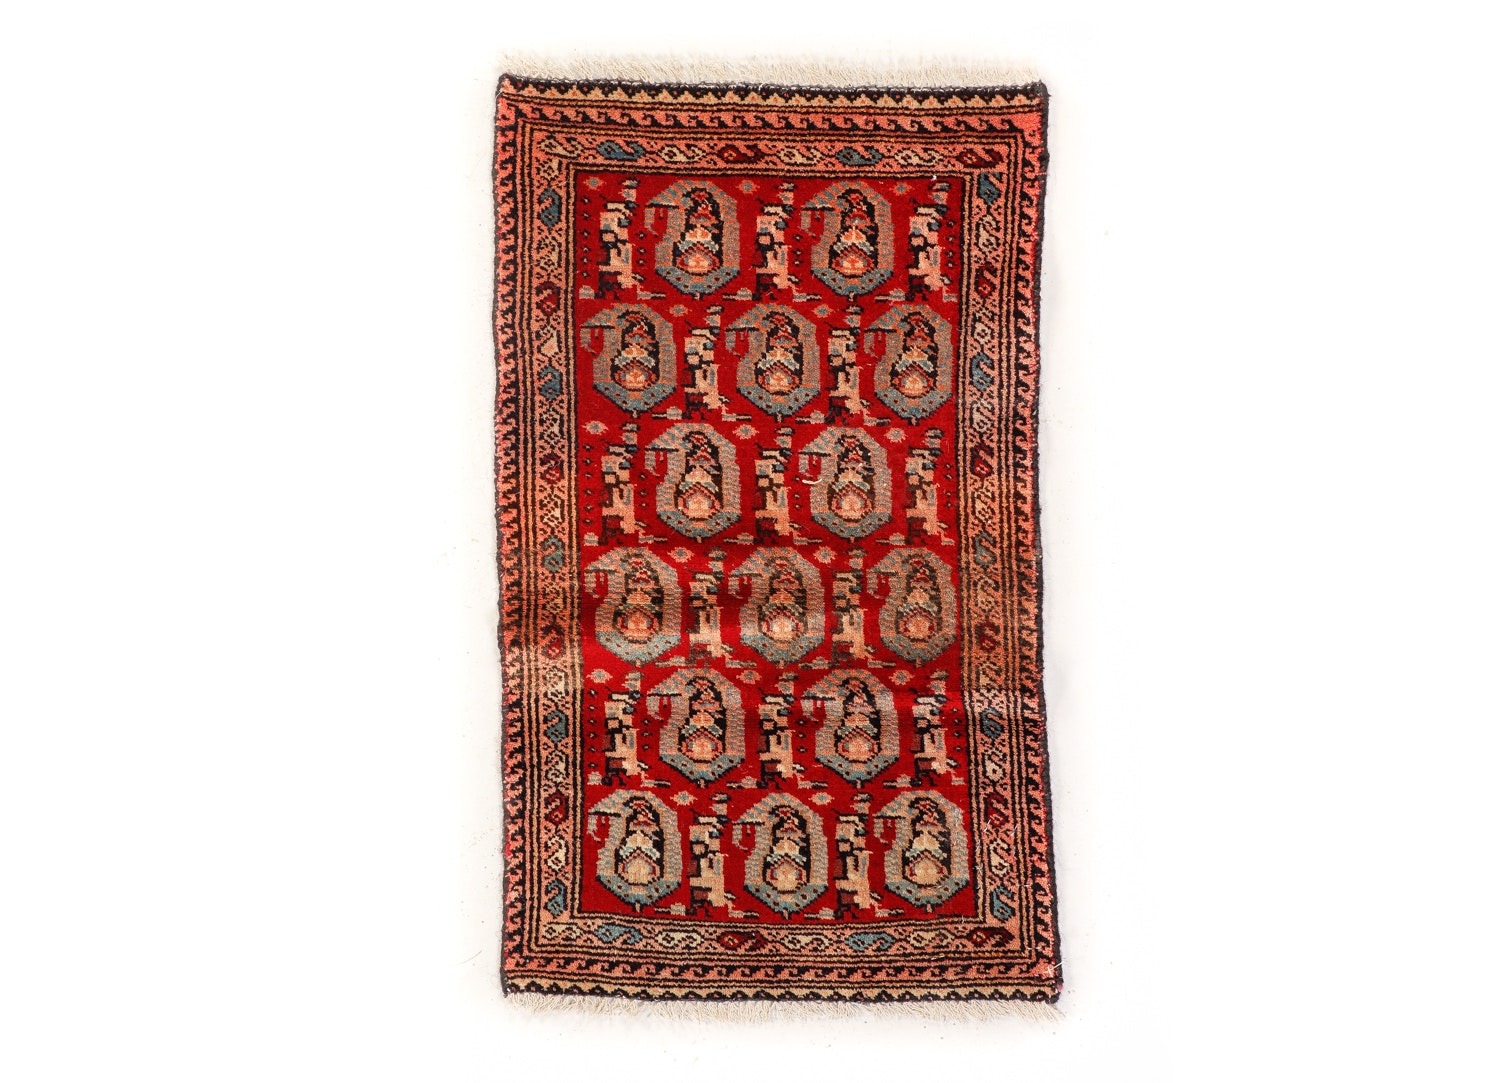 Vintage Hand-Knotted Persian Qum Wool Accent Rug